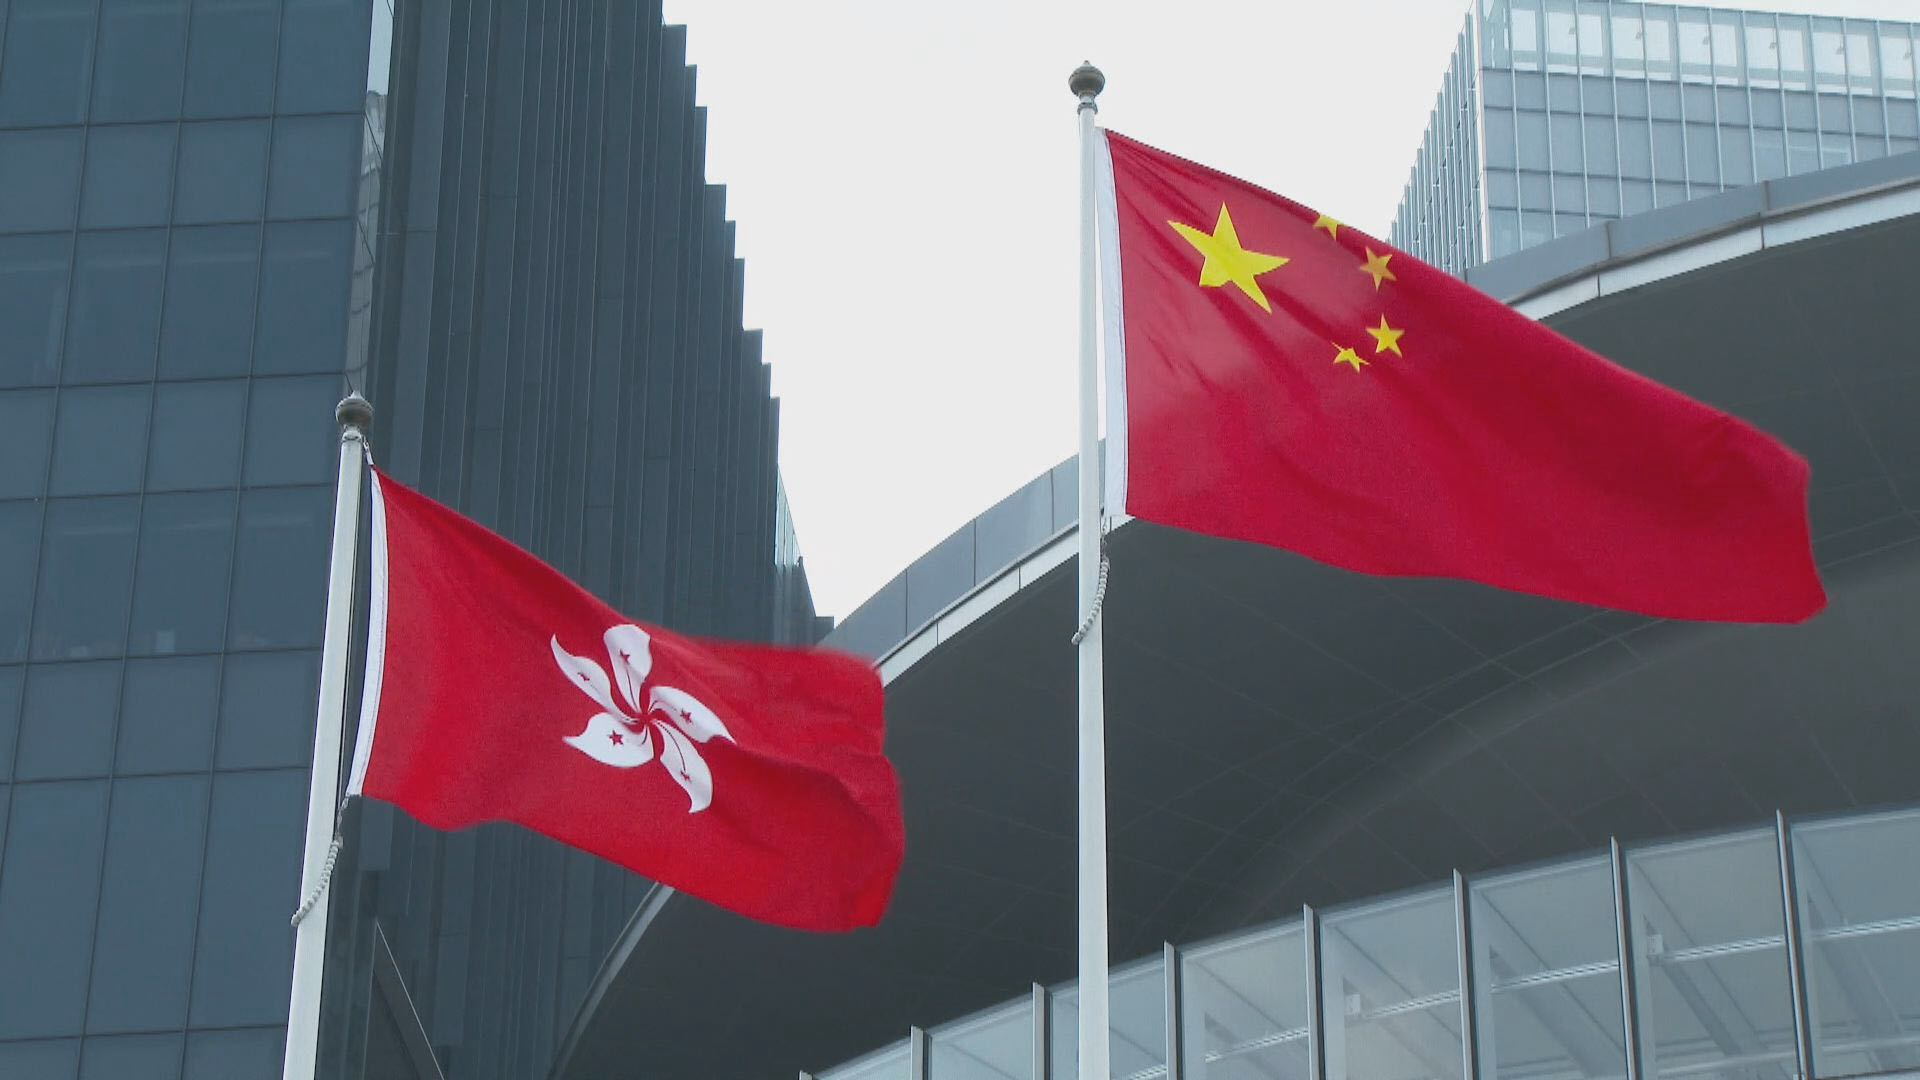 Liaison office in HK condemns US congressional committees' passing of HK-related act